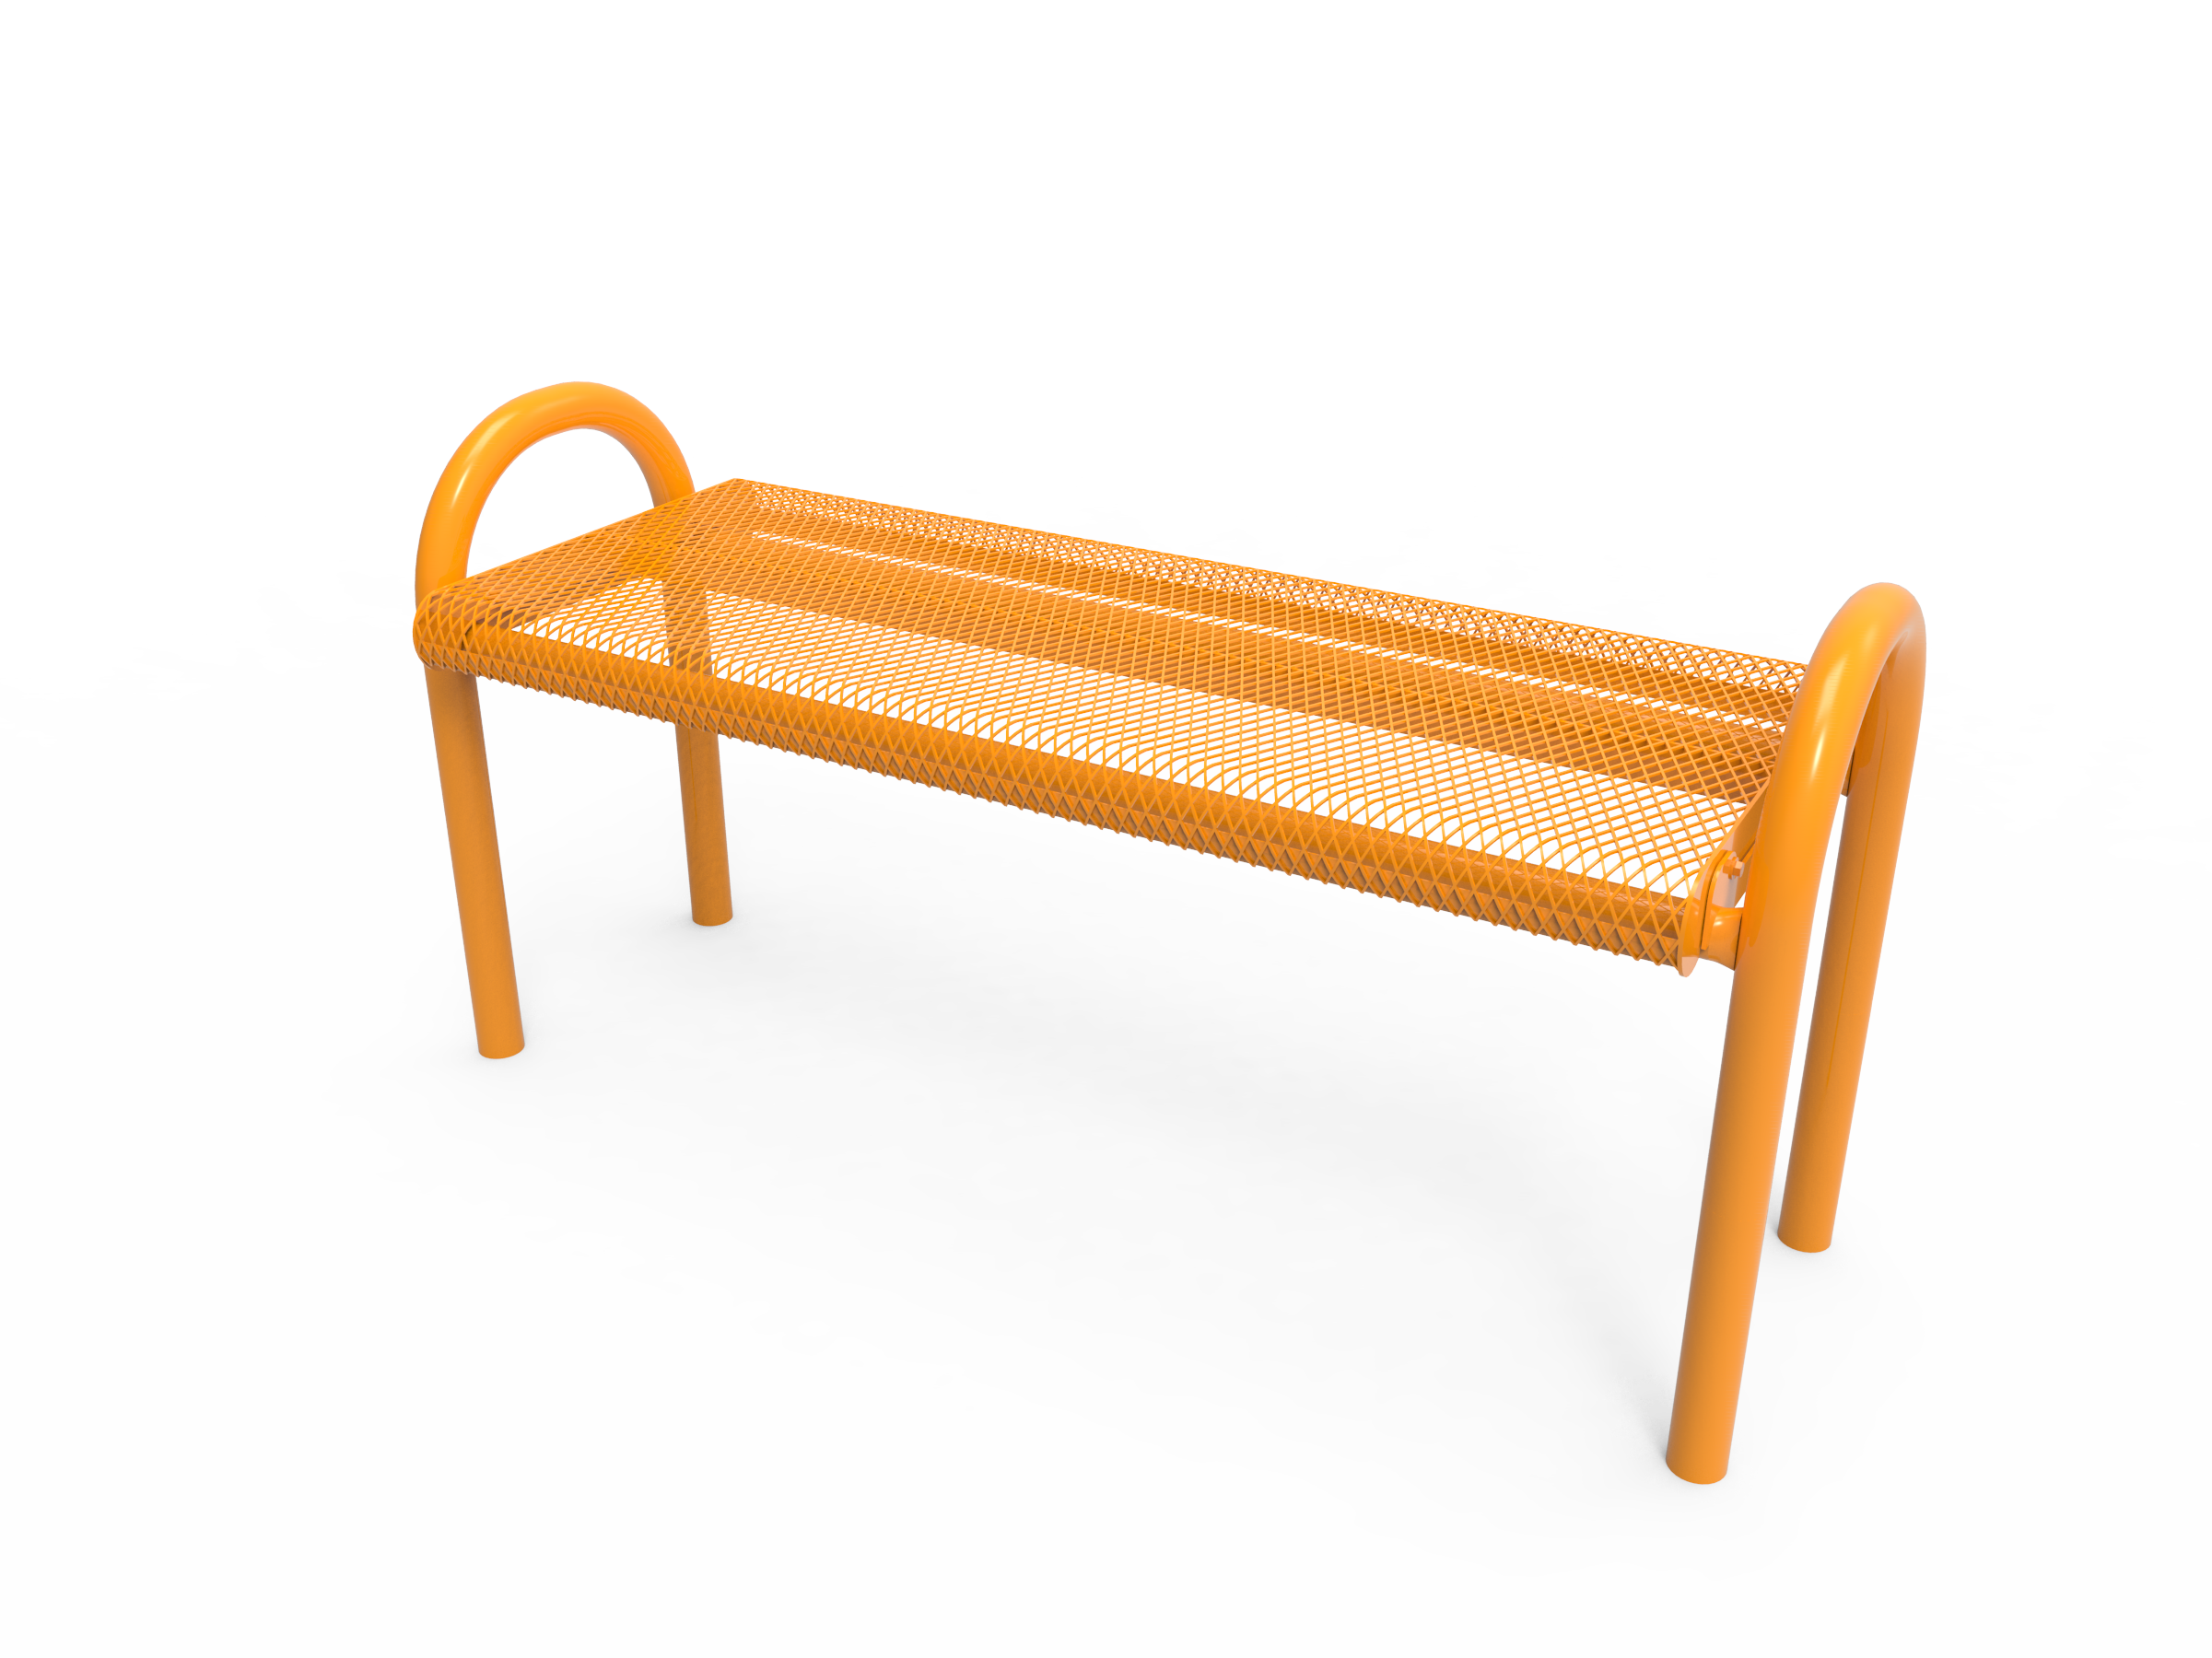 4' Lexington MOD Bench without Back